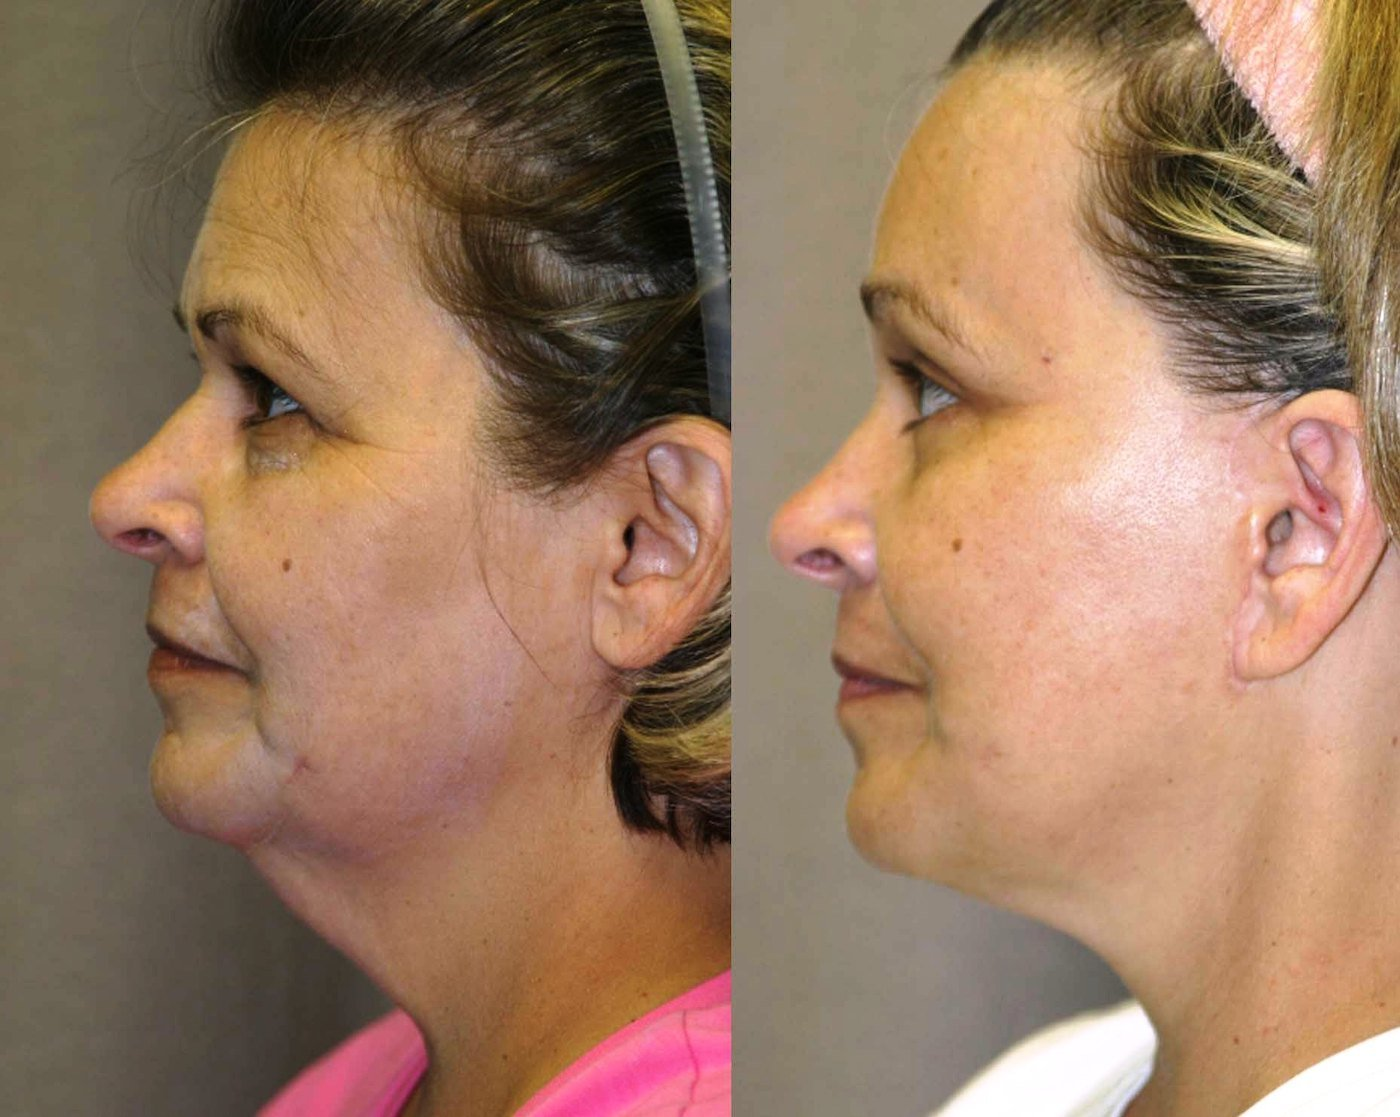 57 year-old, 9 month follow-up after facelift, lower external blepharoplasty with lateral canthoplasty, endoscopic browlift with endotine fixation,side view